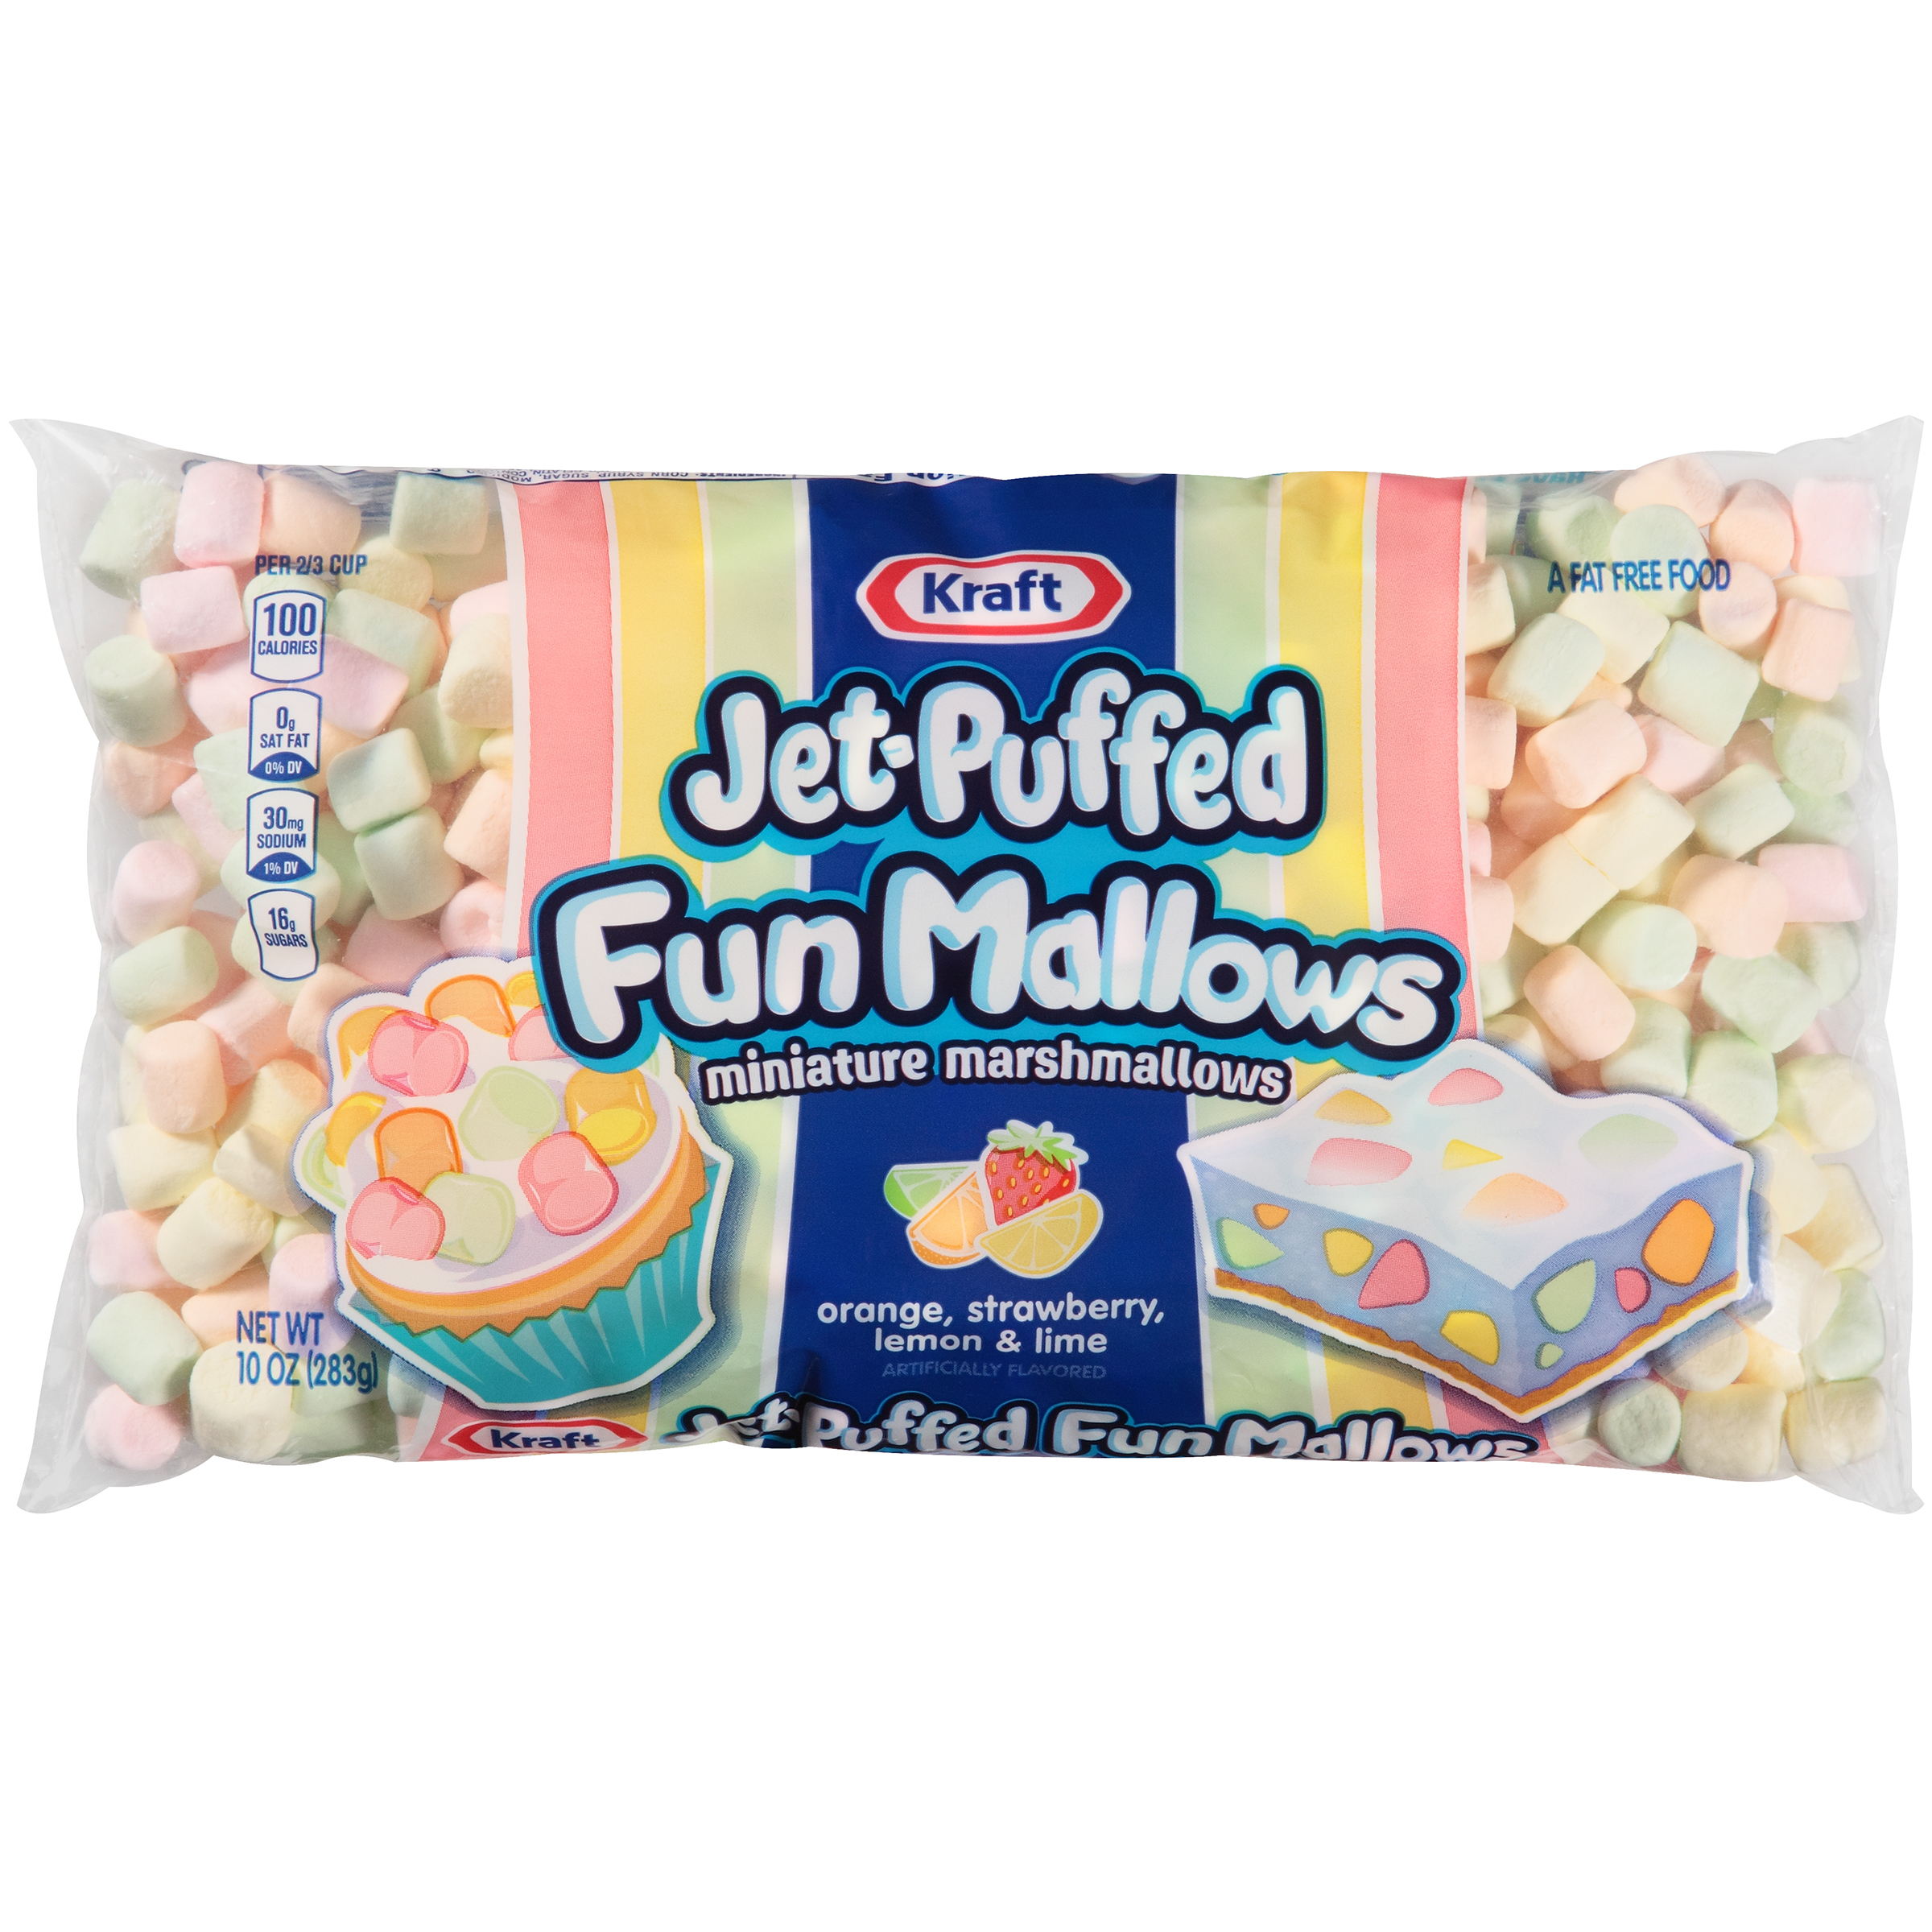 (6 pack) Kraft Jet- Puffed FunMallows Colored Miniature Marshmallows 10 oz Wrapper